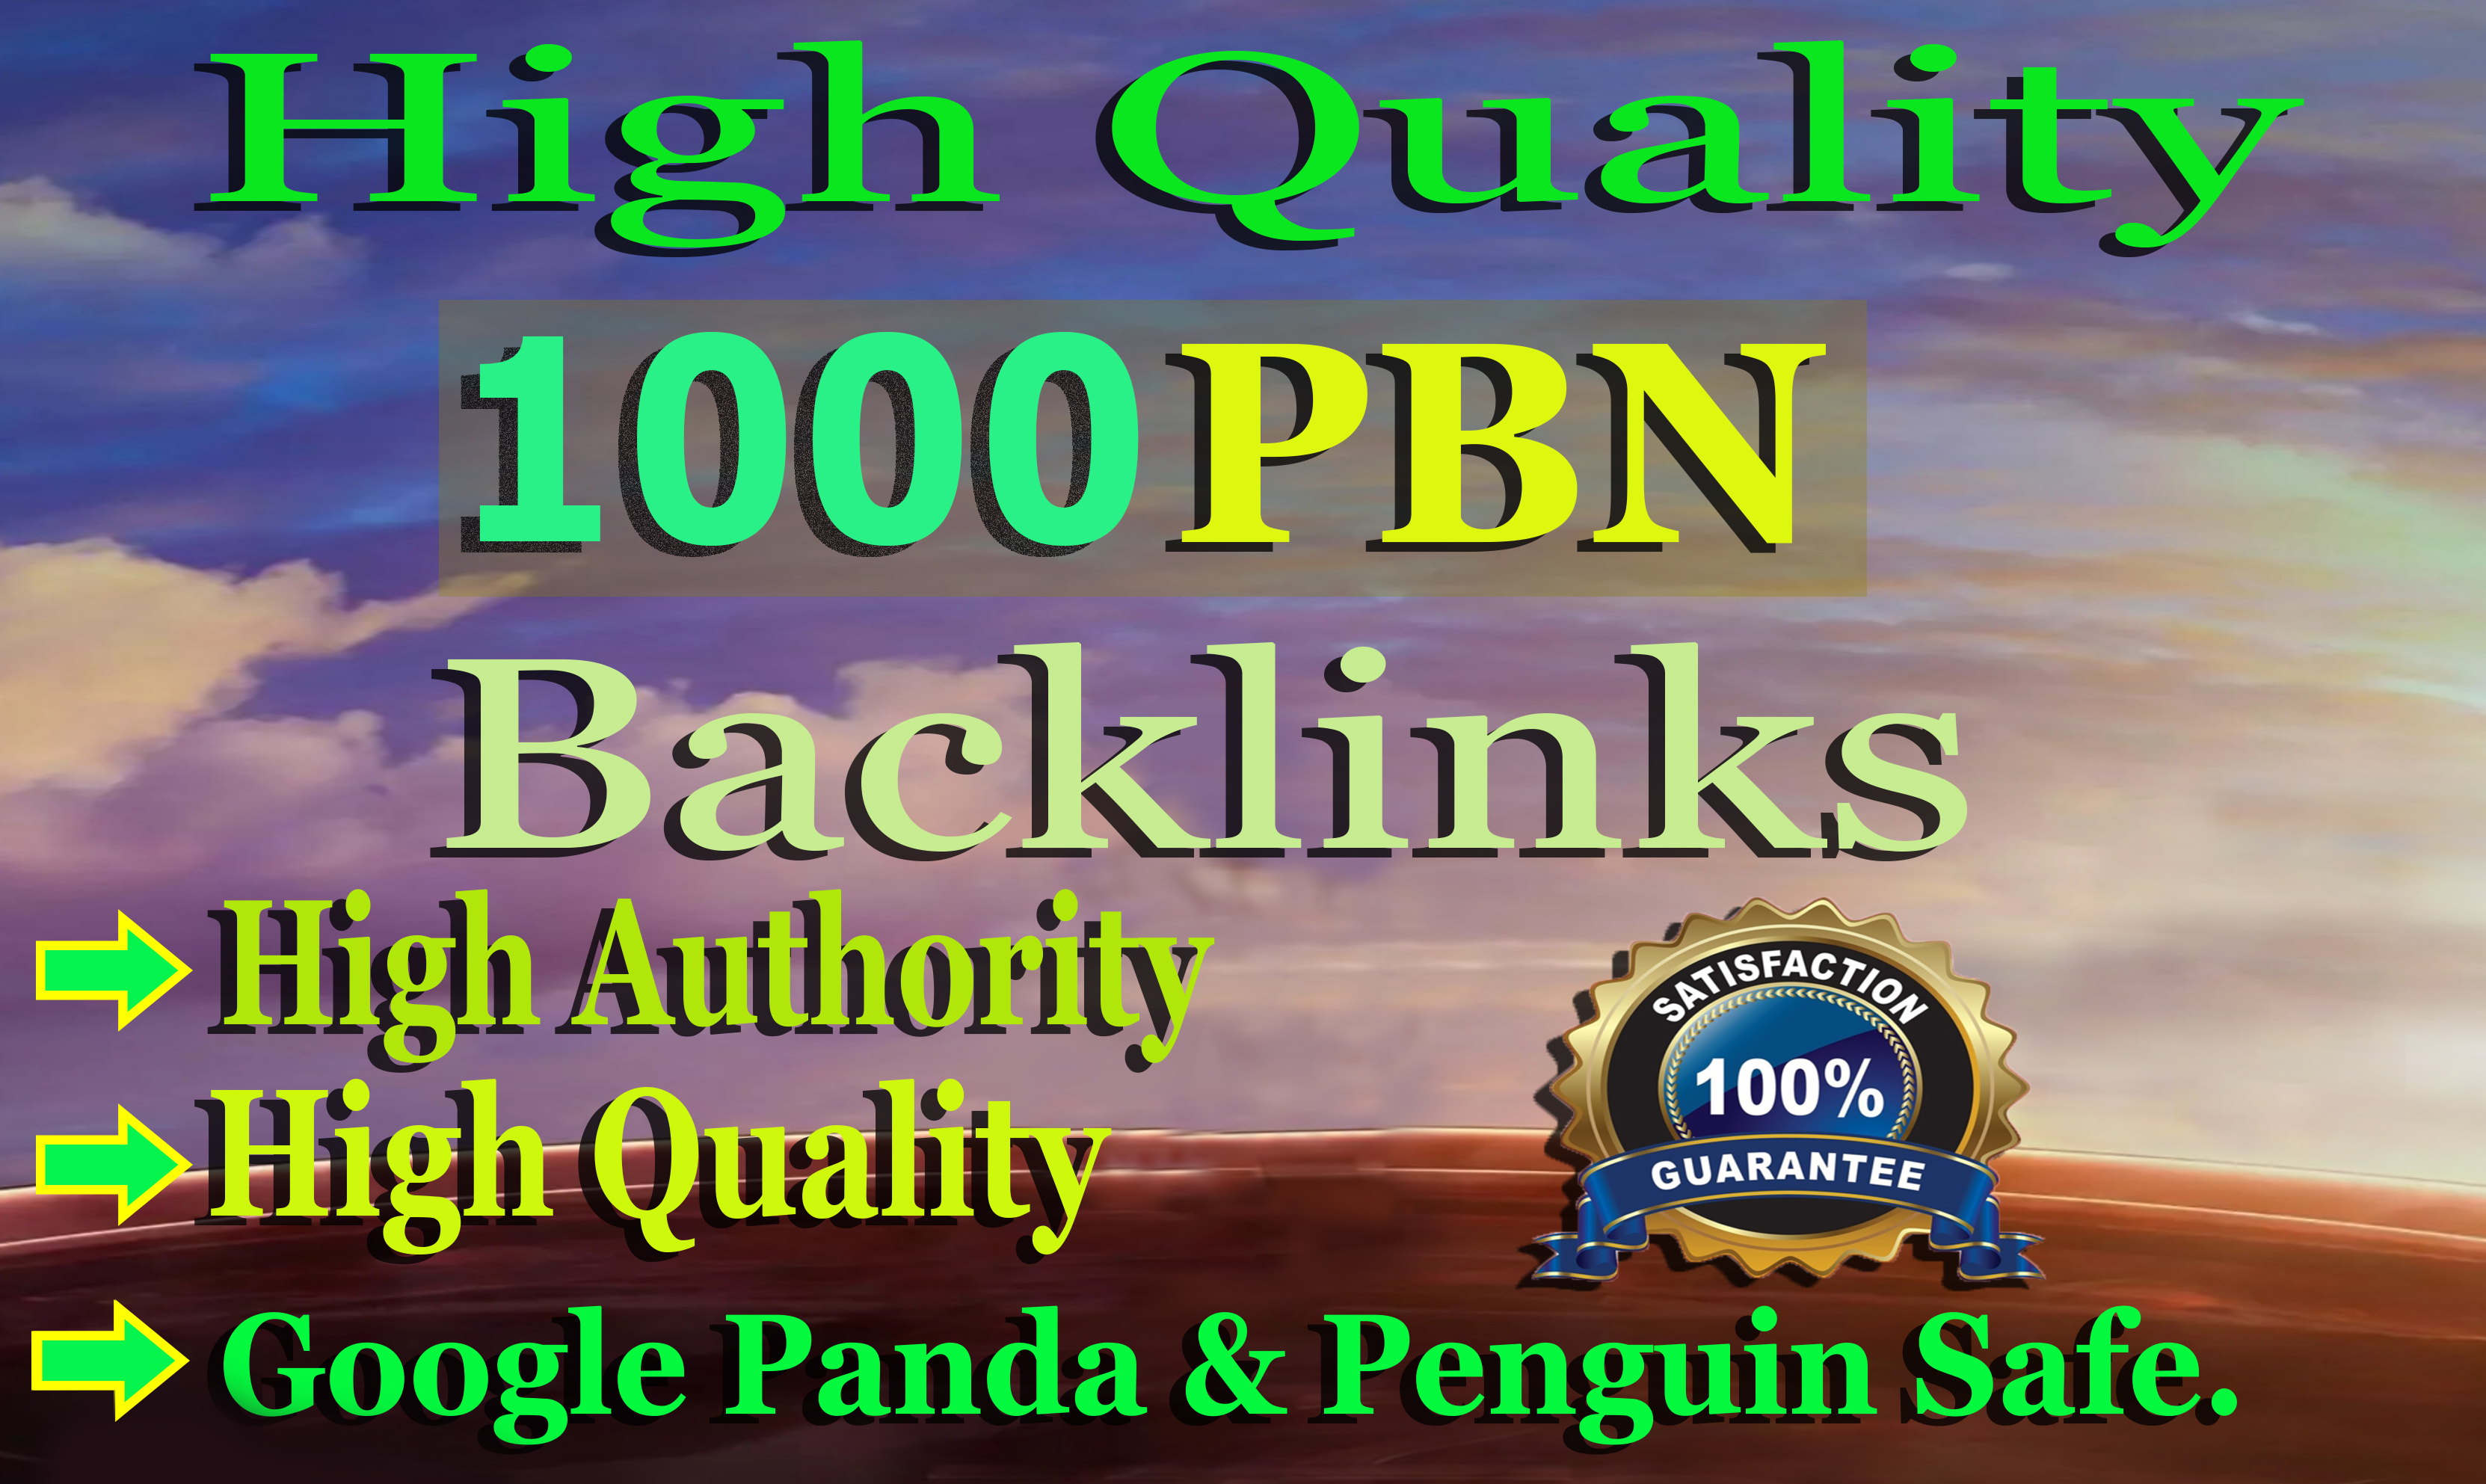 I will 1000 Web2.0 PBN Backlinks to Boost your Website